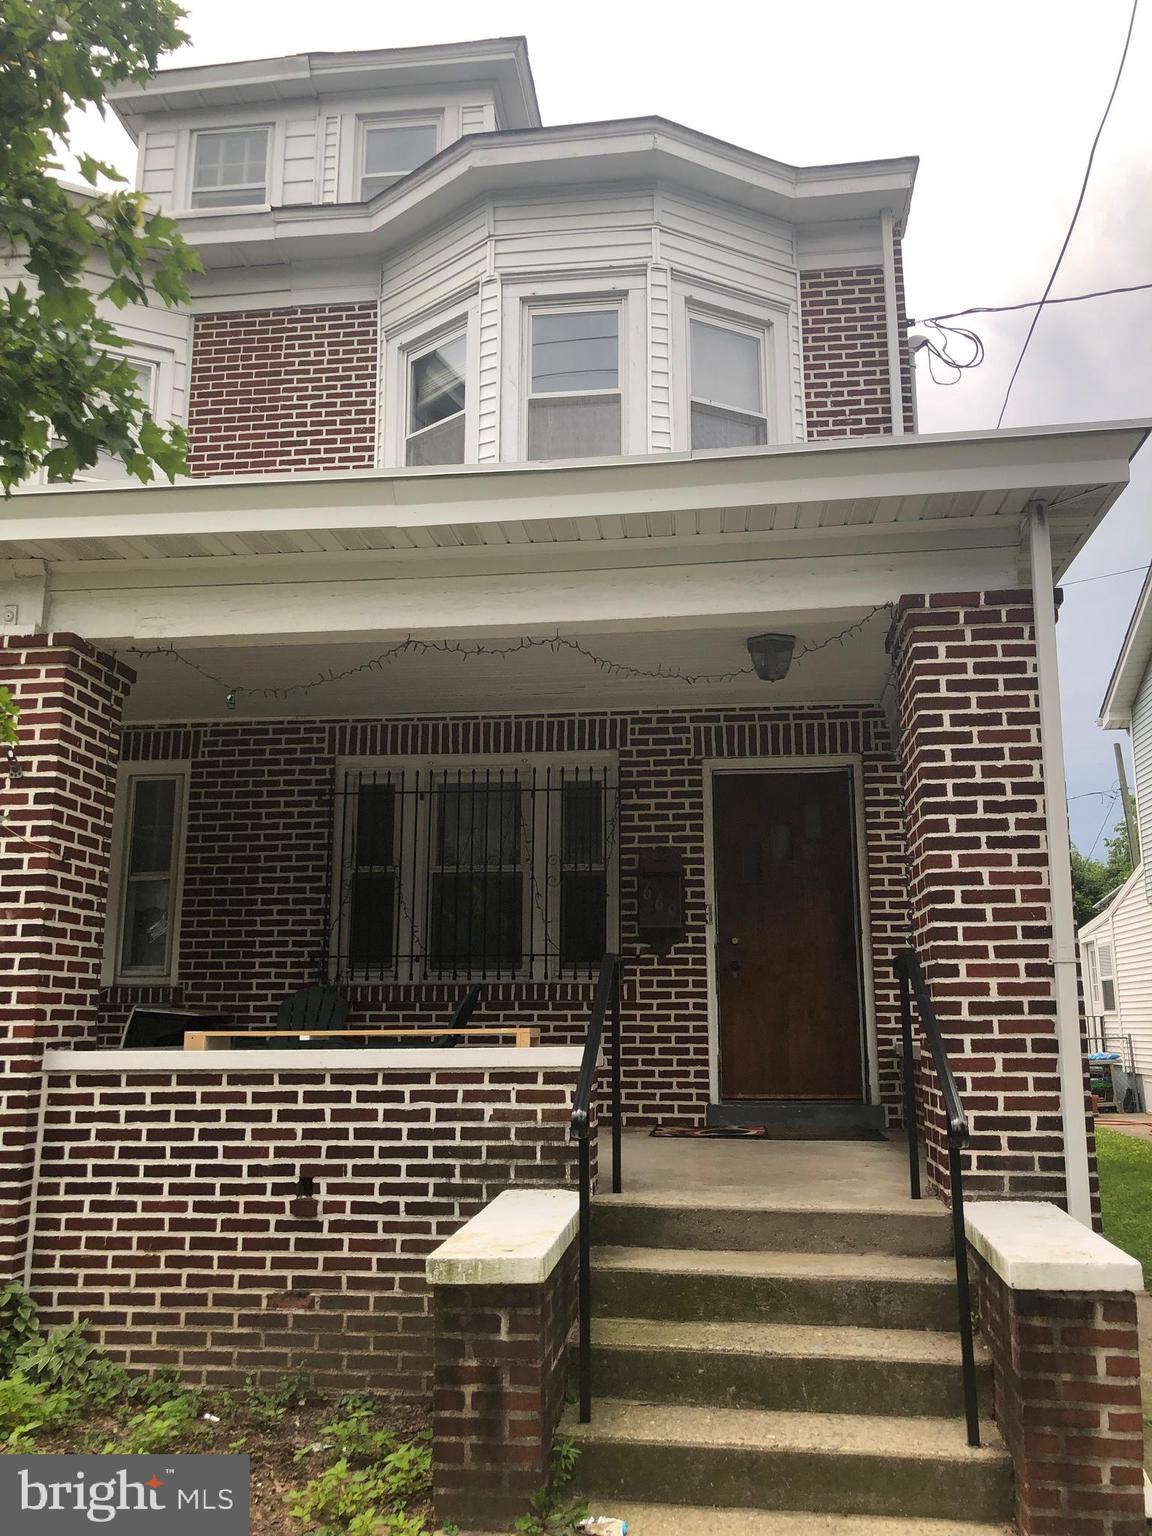 669 S OLDEN AVENUE, TRENTON, NJ 08629